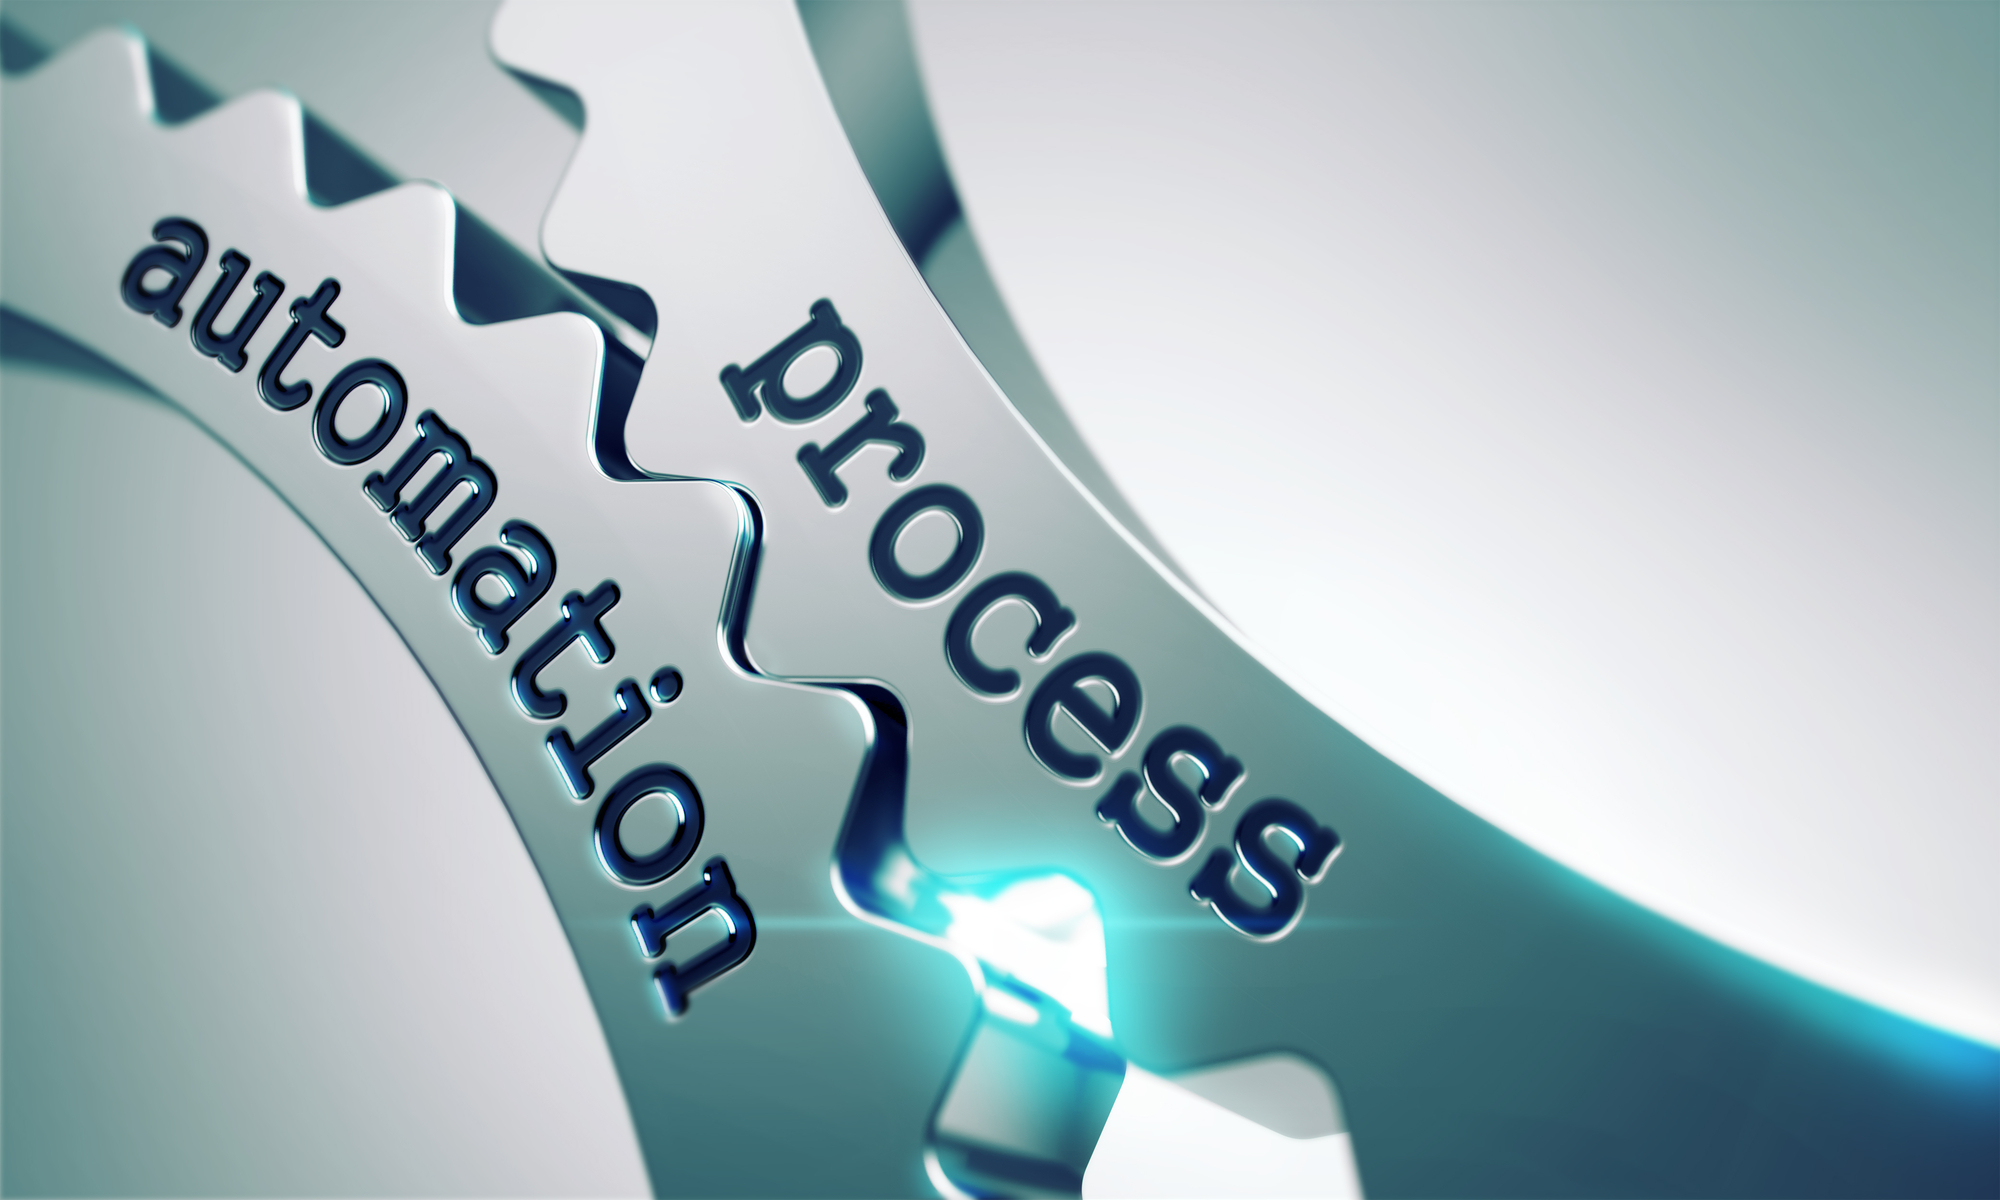 Process Automation on the Gears